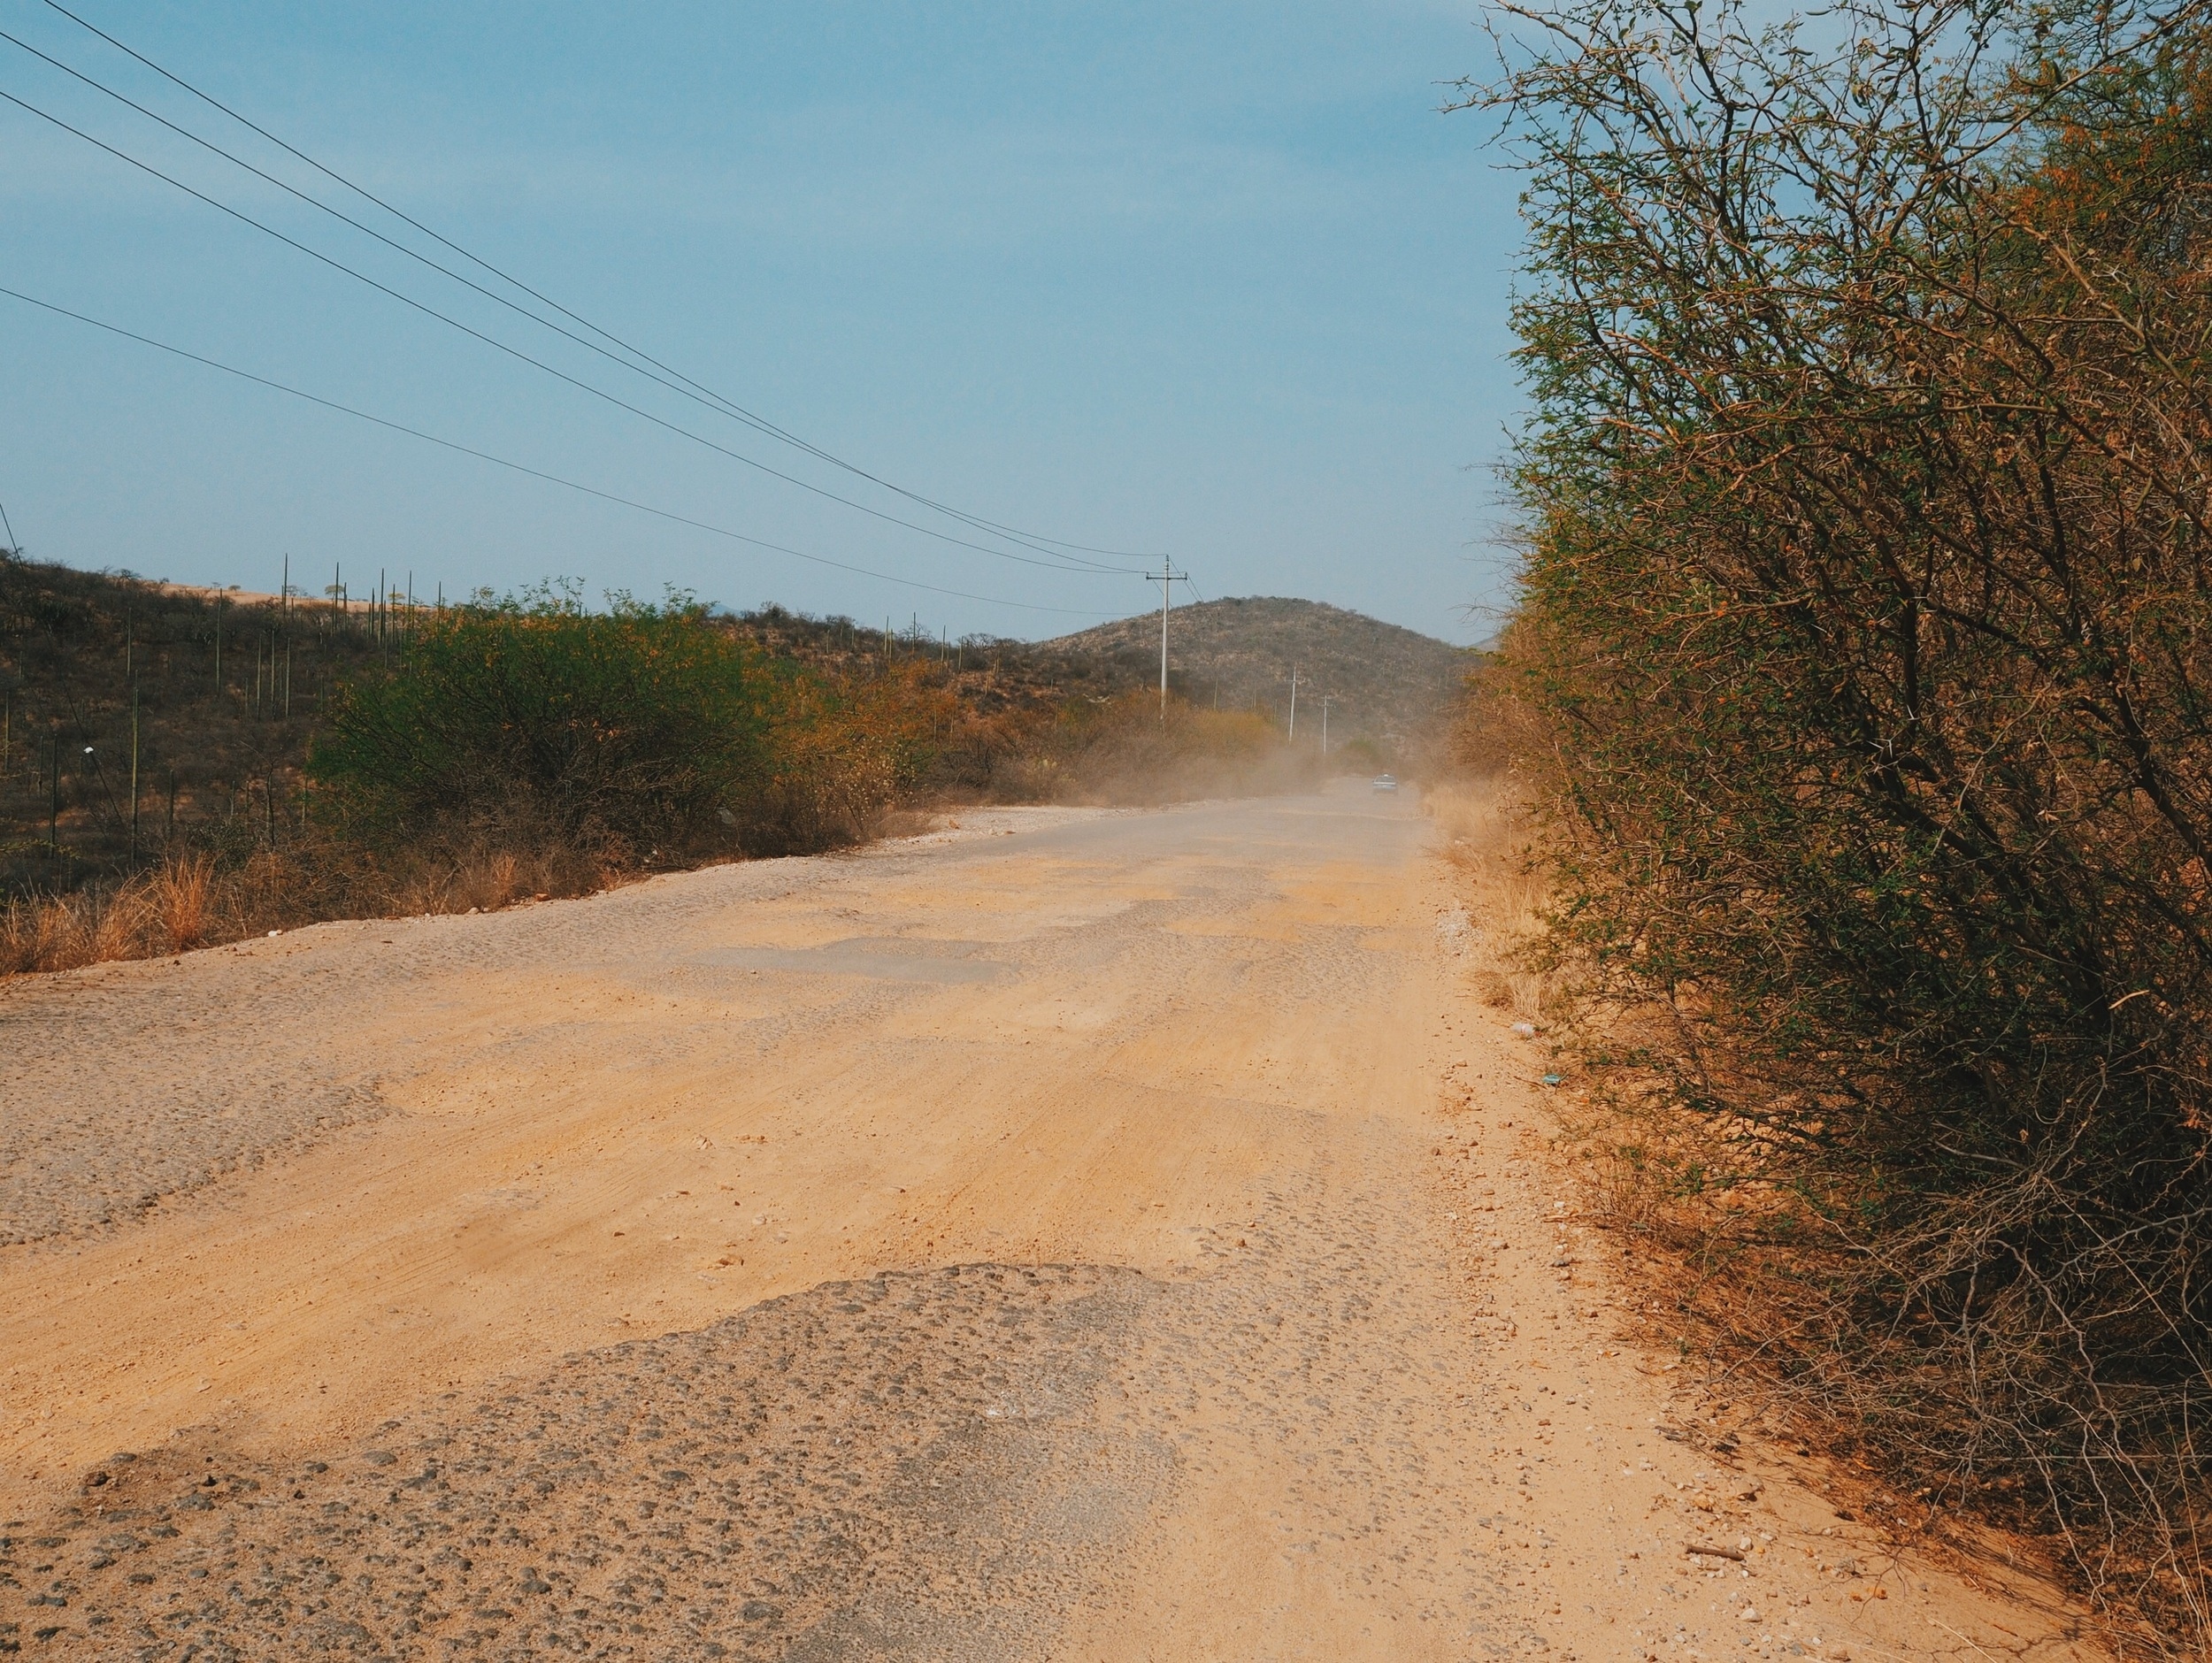 Paved roads through Southern Puebla were a bit chewed up but with so little traffic we were able to navigate the pot-holes no problem